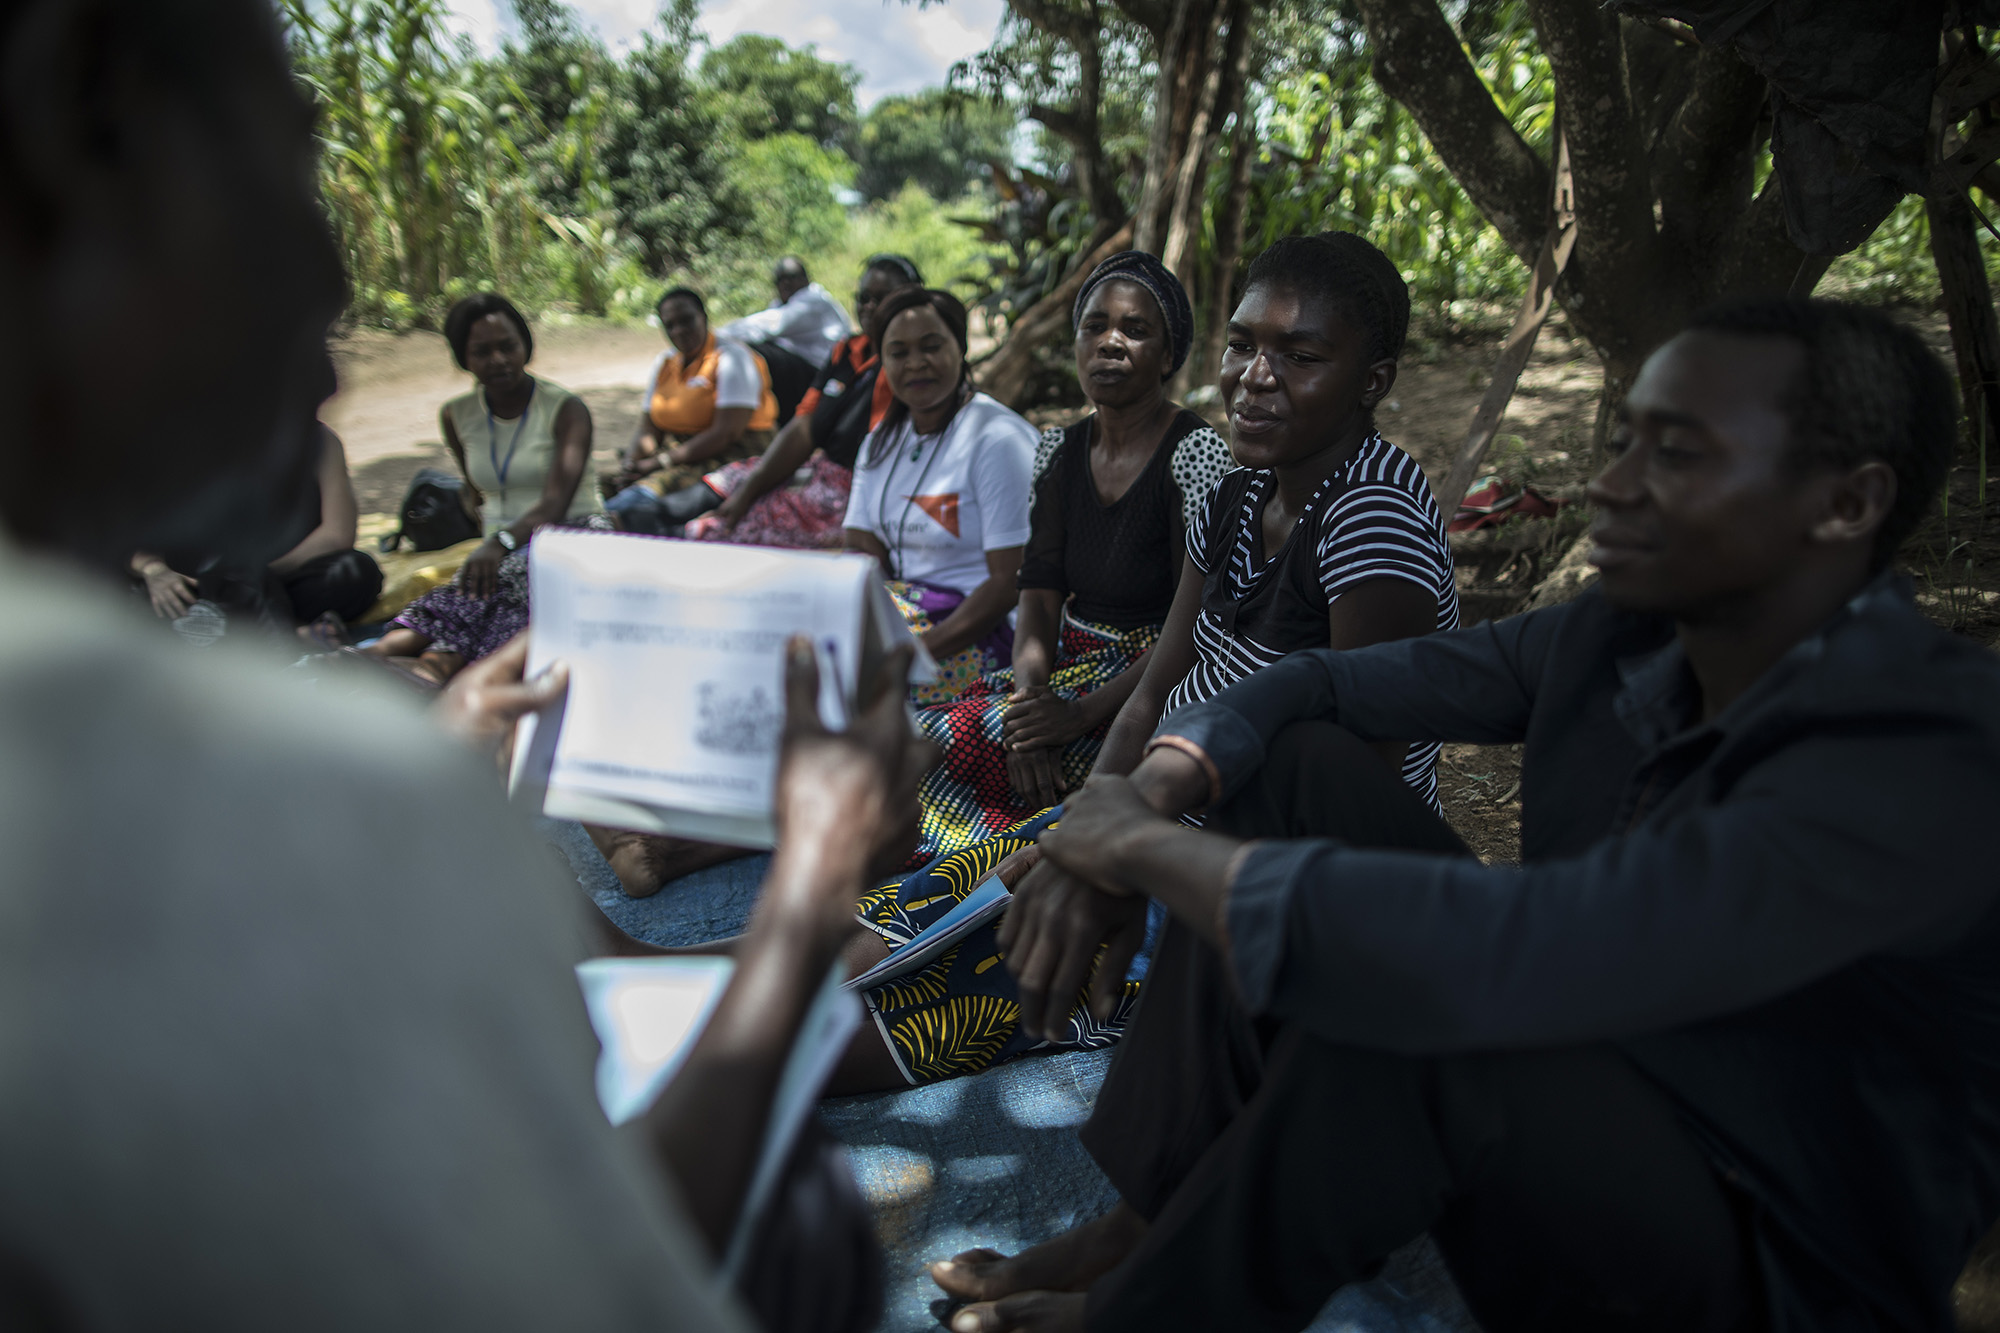 CHONGWE, ZAMBIA: Feb. 19, 2018 - Members of the CARE Learning Tour to Zambia delegation watch as Dennis Chulu, left, goes over a birth planning story with David Hachitamba, right, and his wife, Memory Hachitamba, second from right, during a SMAG home visit simulation near the Hachichamba's house in Chongwe. Photo by Sarah Grile.